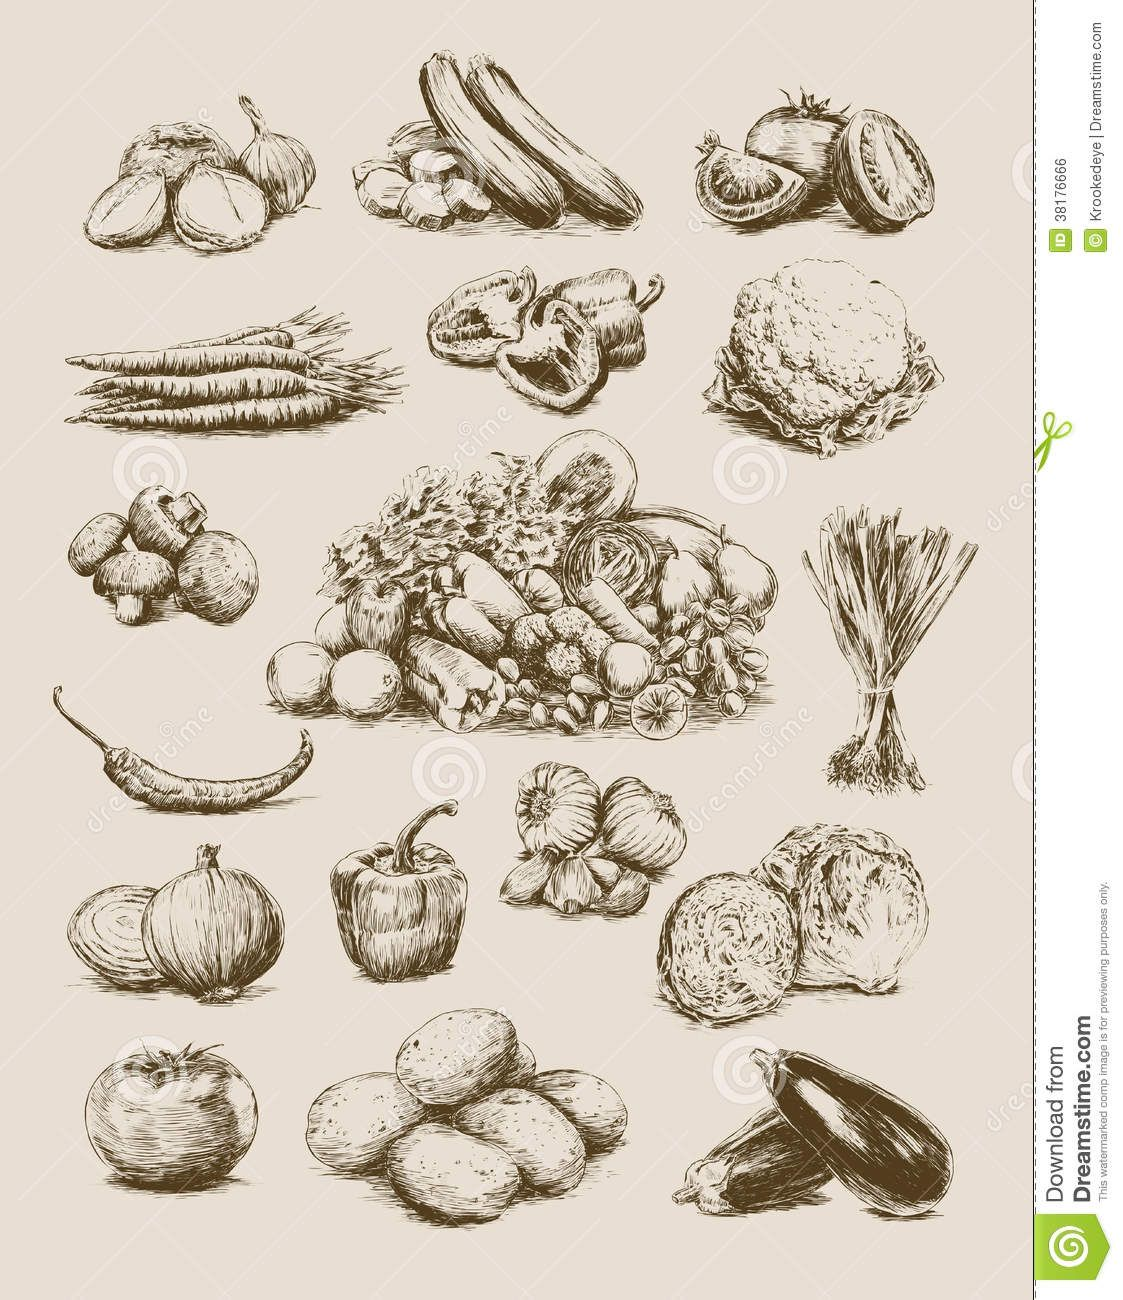 Vintage Vegetable Drawing Google Search How To Draw Hands Plant Sketches Dragon Tattoo Vector